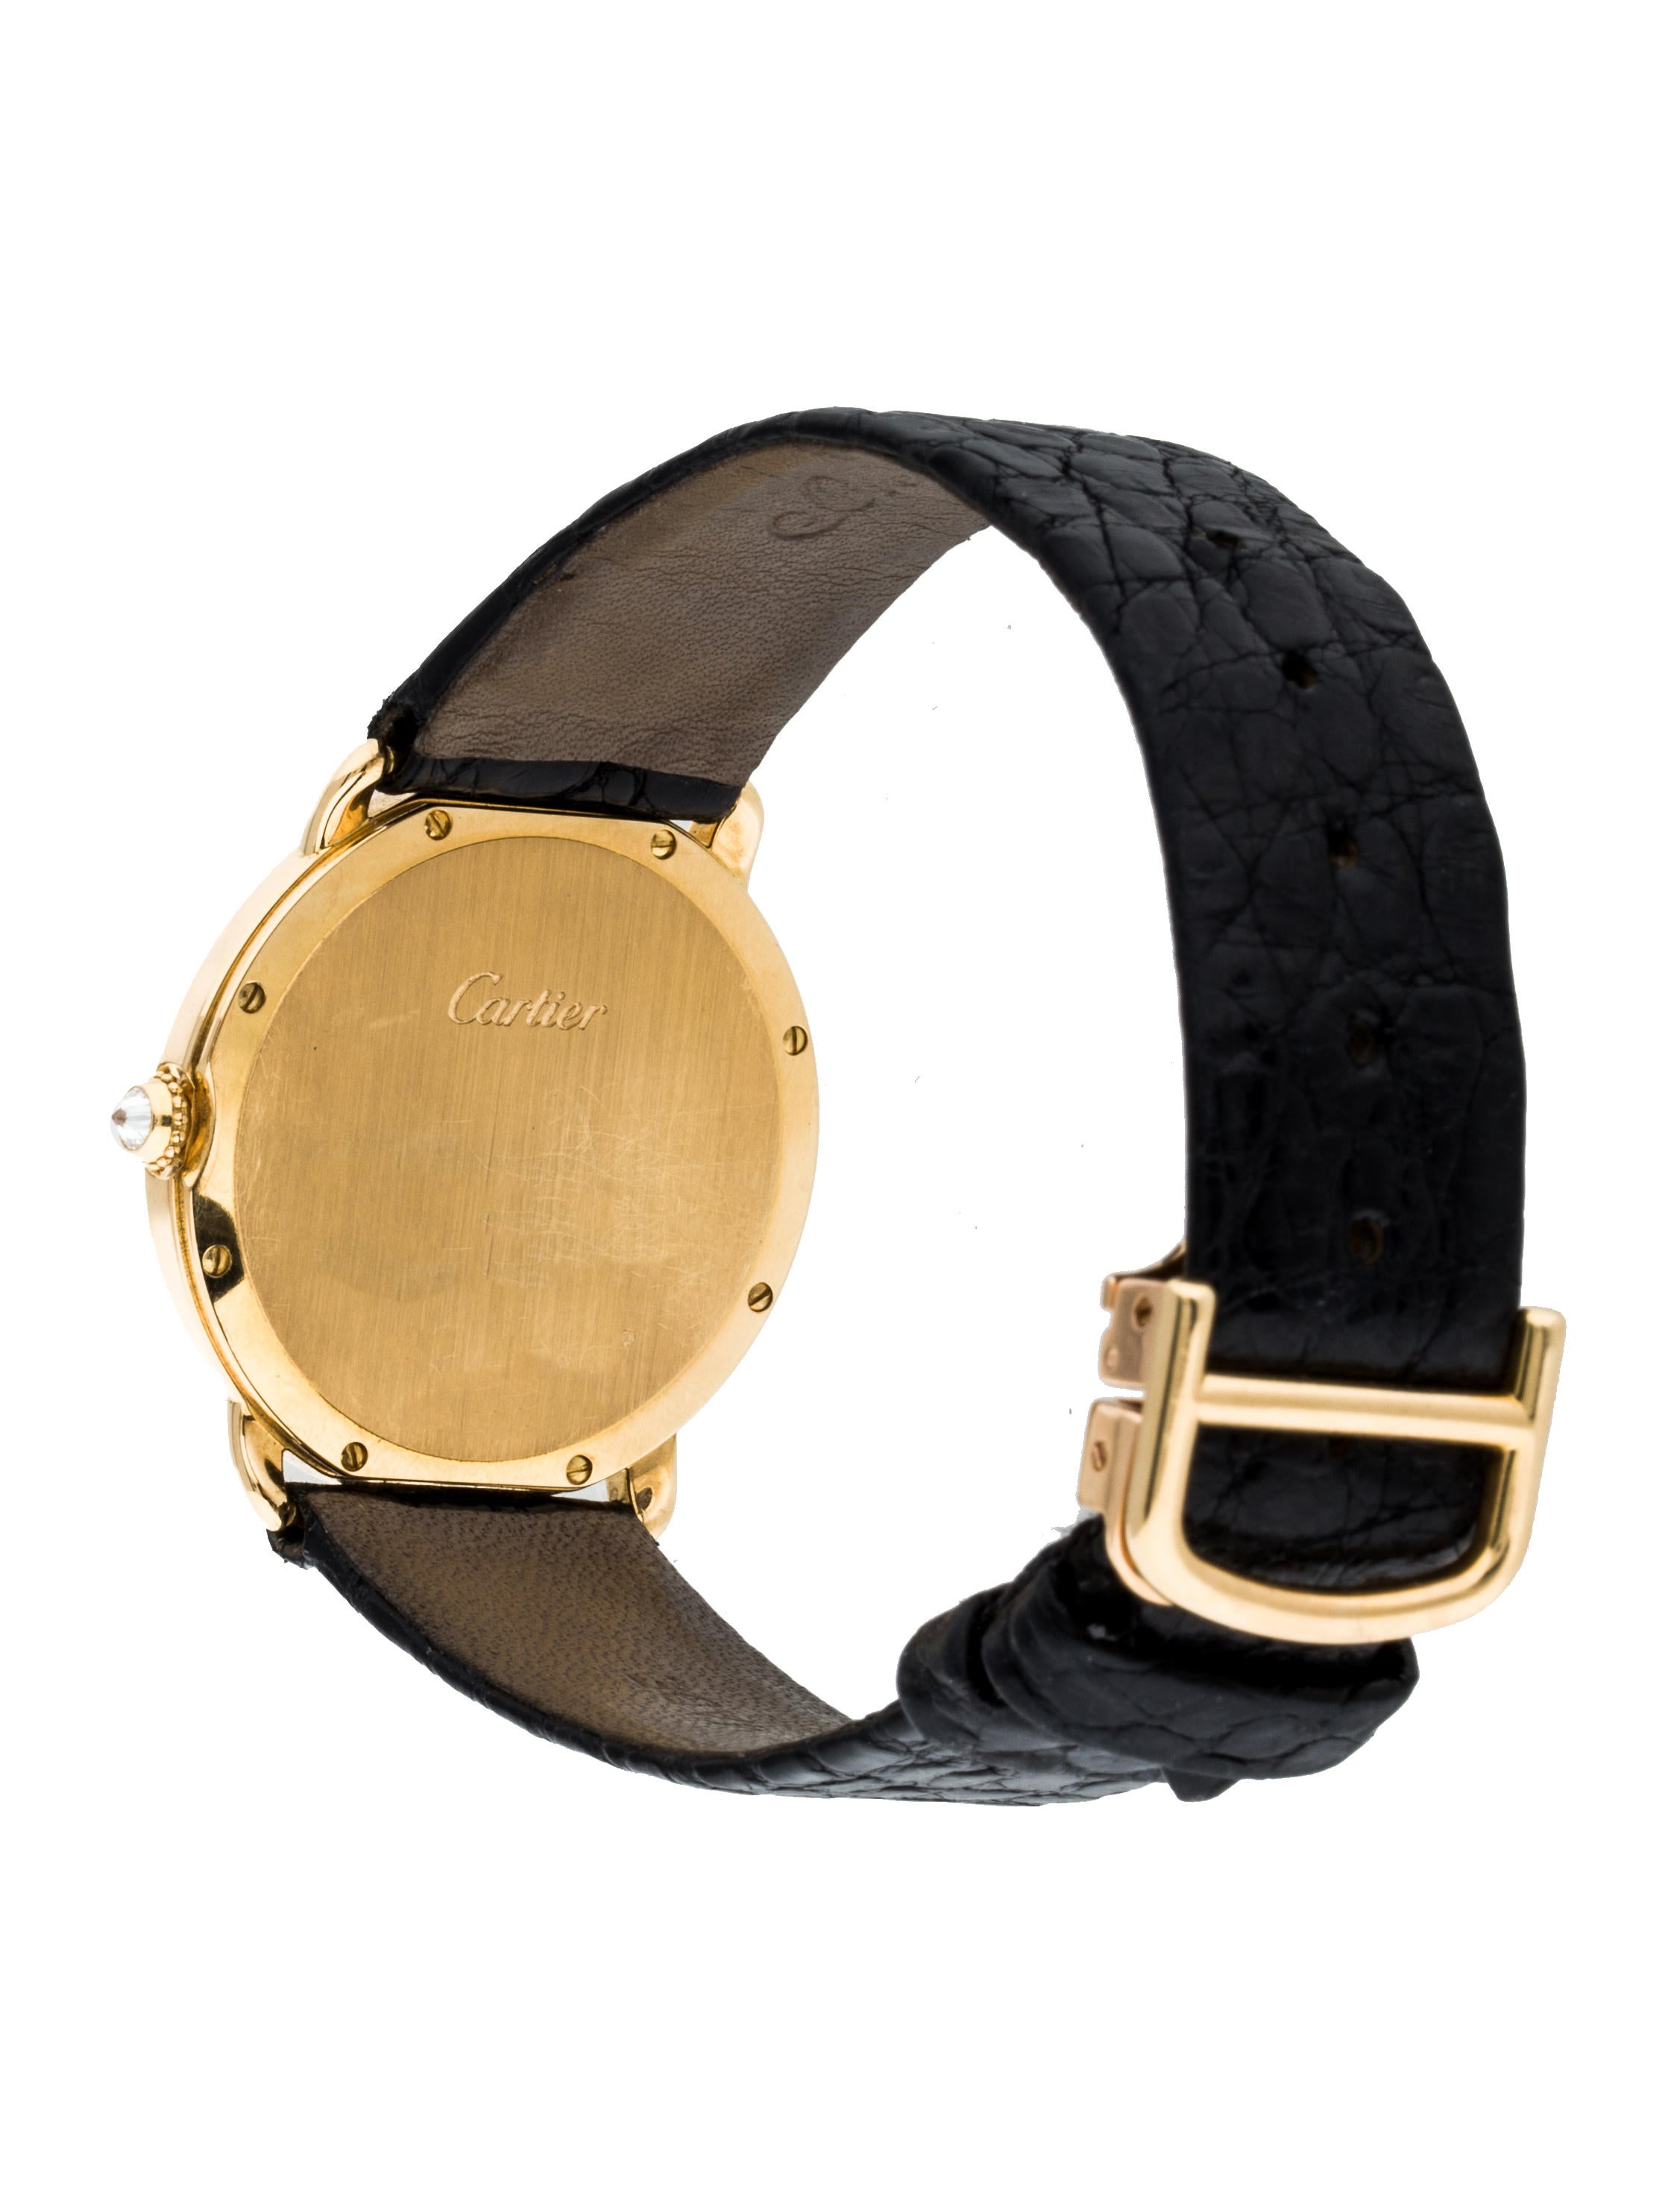 Cartier Ronde Louis Cartier Watch - Strap